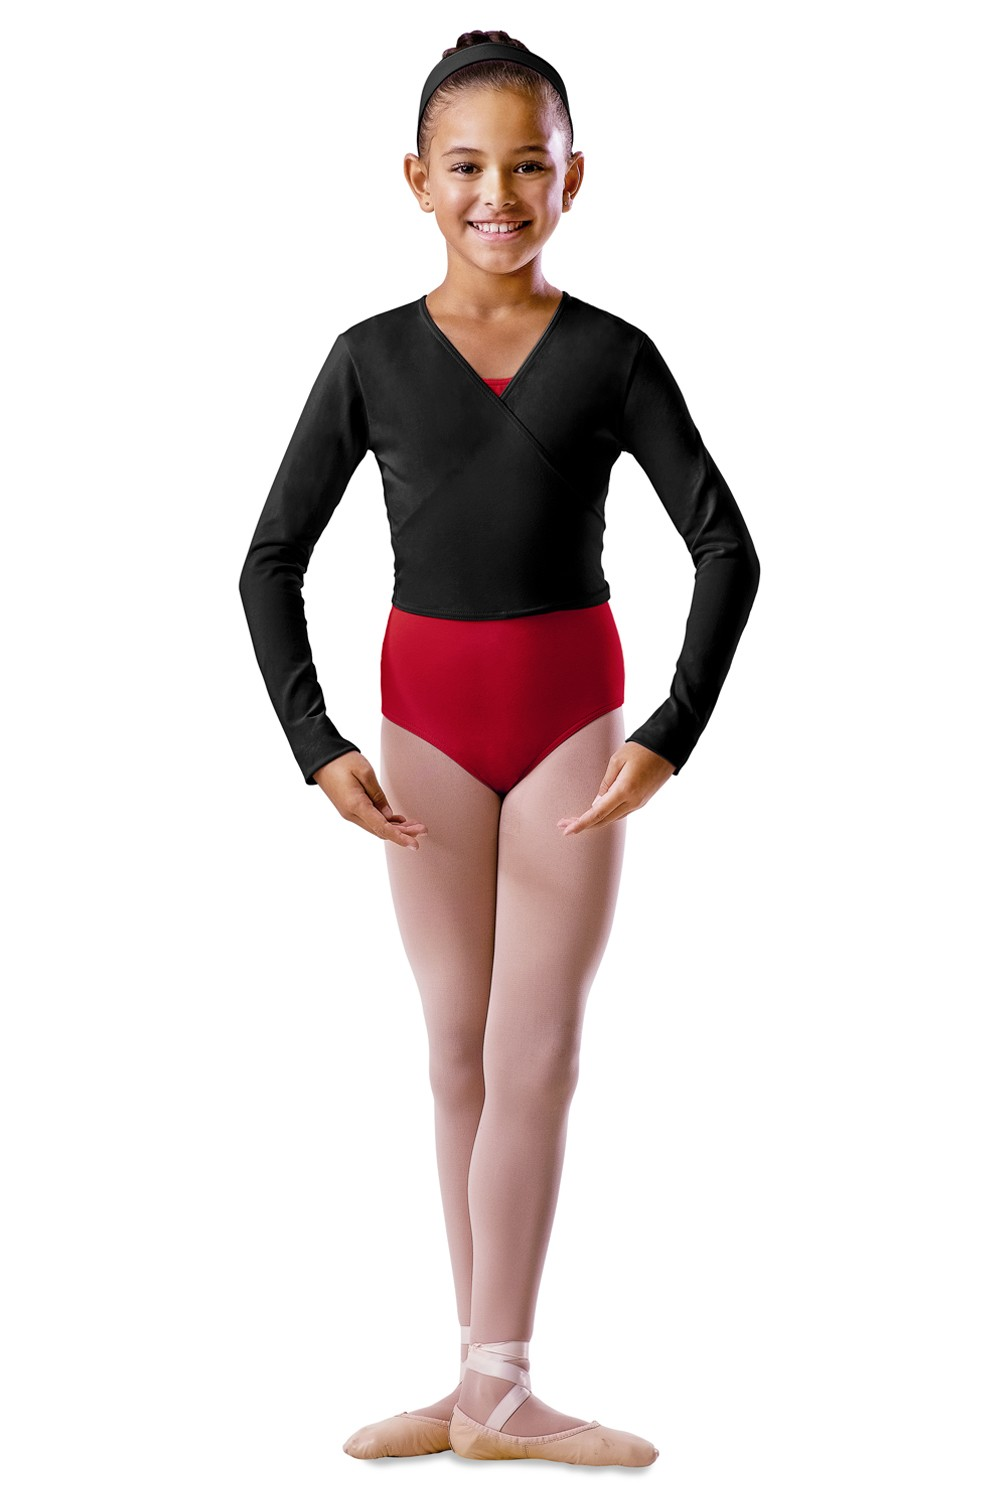 Long Sleeve Wrap Top - Girls Children's Dance Uniforms